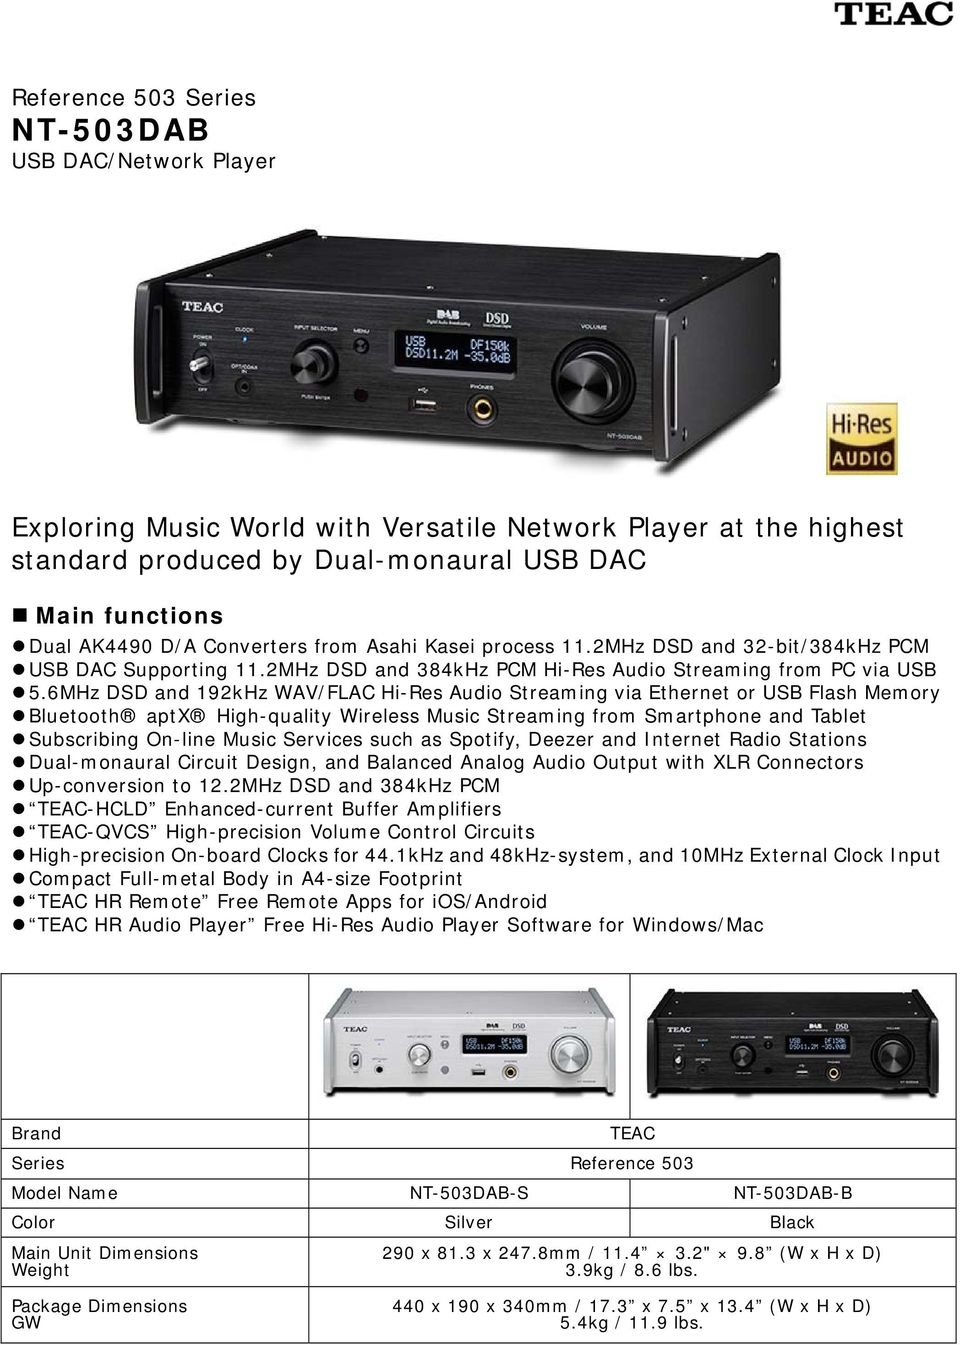 Exploring Music World with Versatile Network Player at the highest